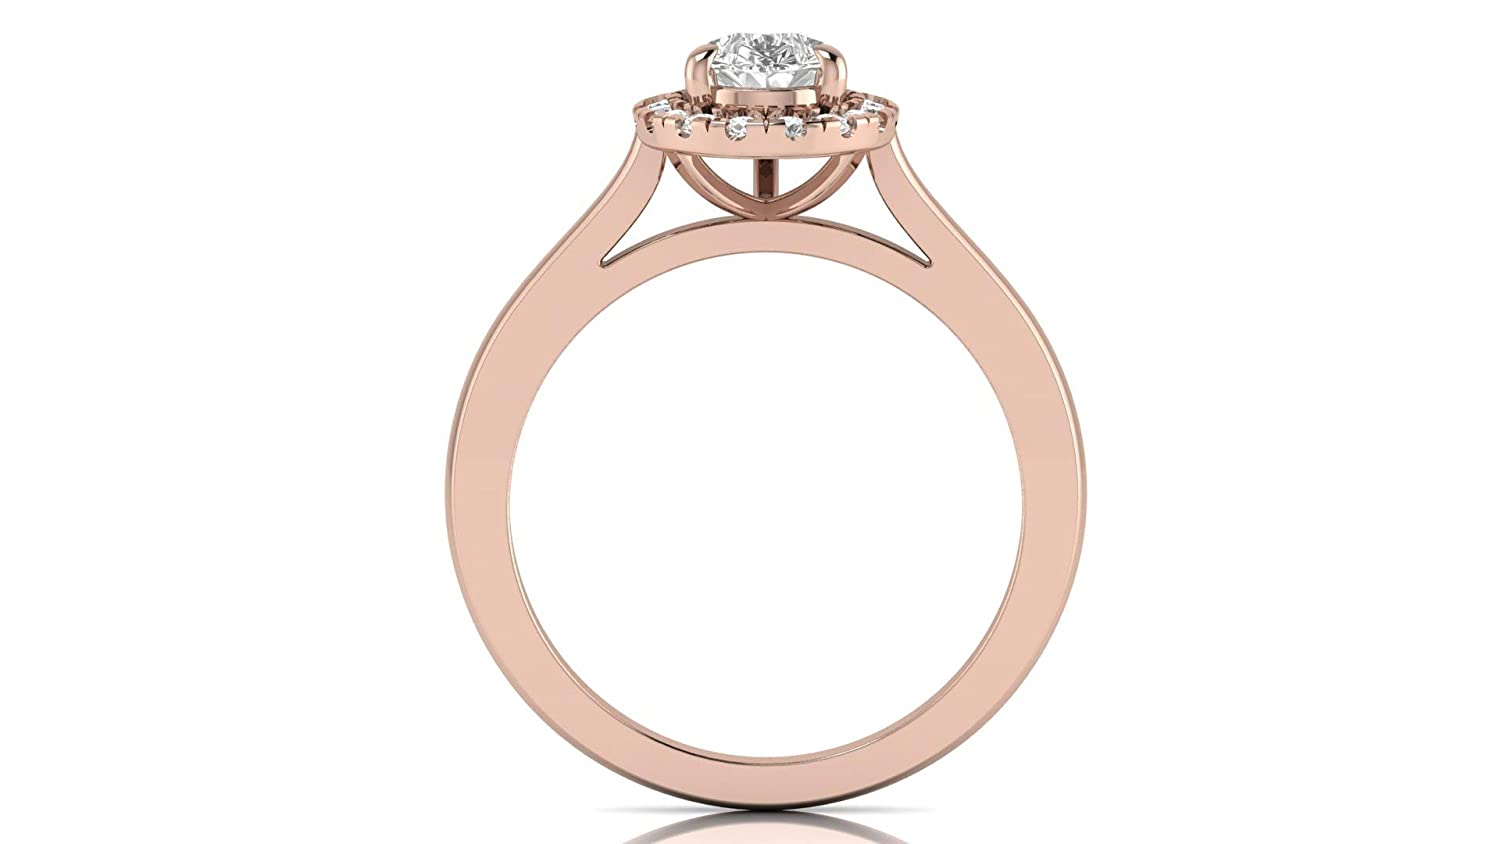 Krivox 1.50 ct Pear /& Round Cut Simulated Diamond 14k Pink Gold Finish Halo Solitaire Engagement Ring for Womens